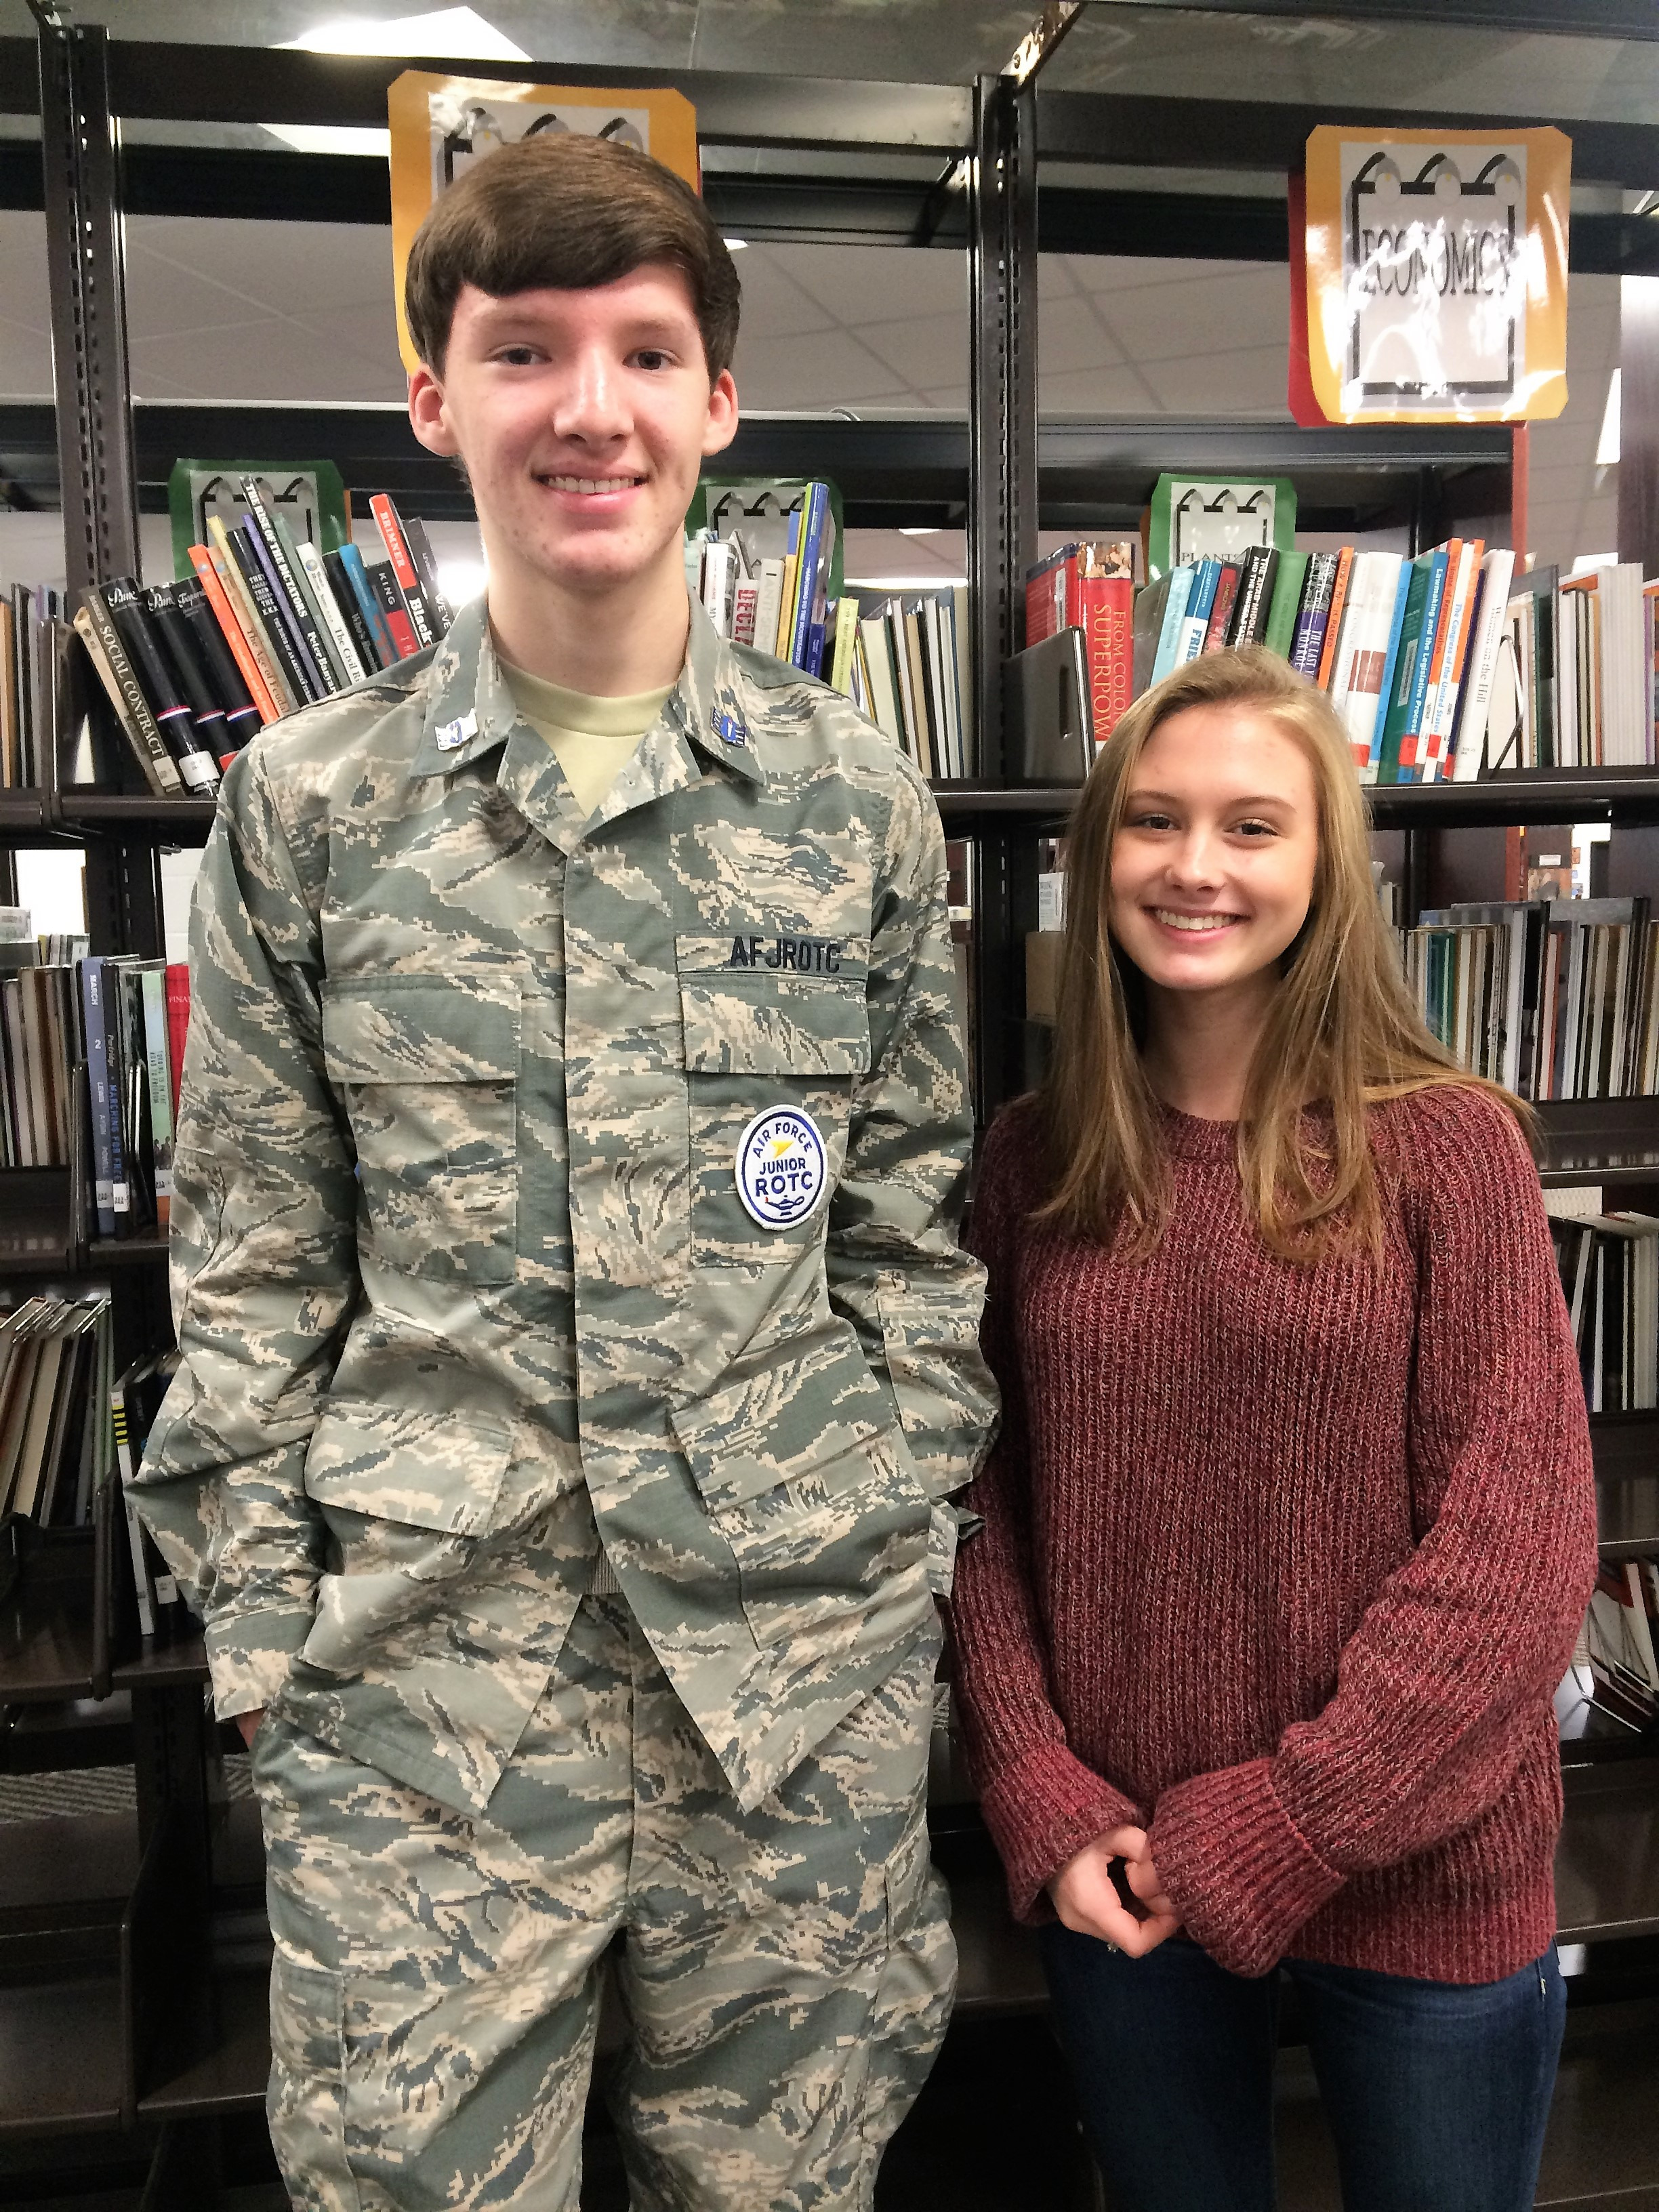 Brooks & Wessinger selected HOBY reps